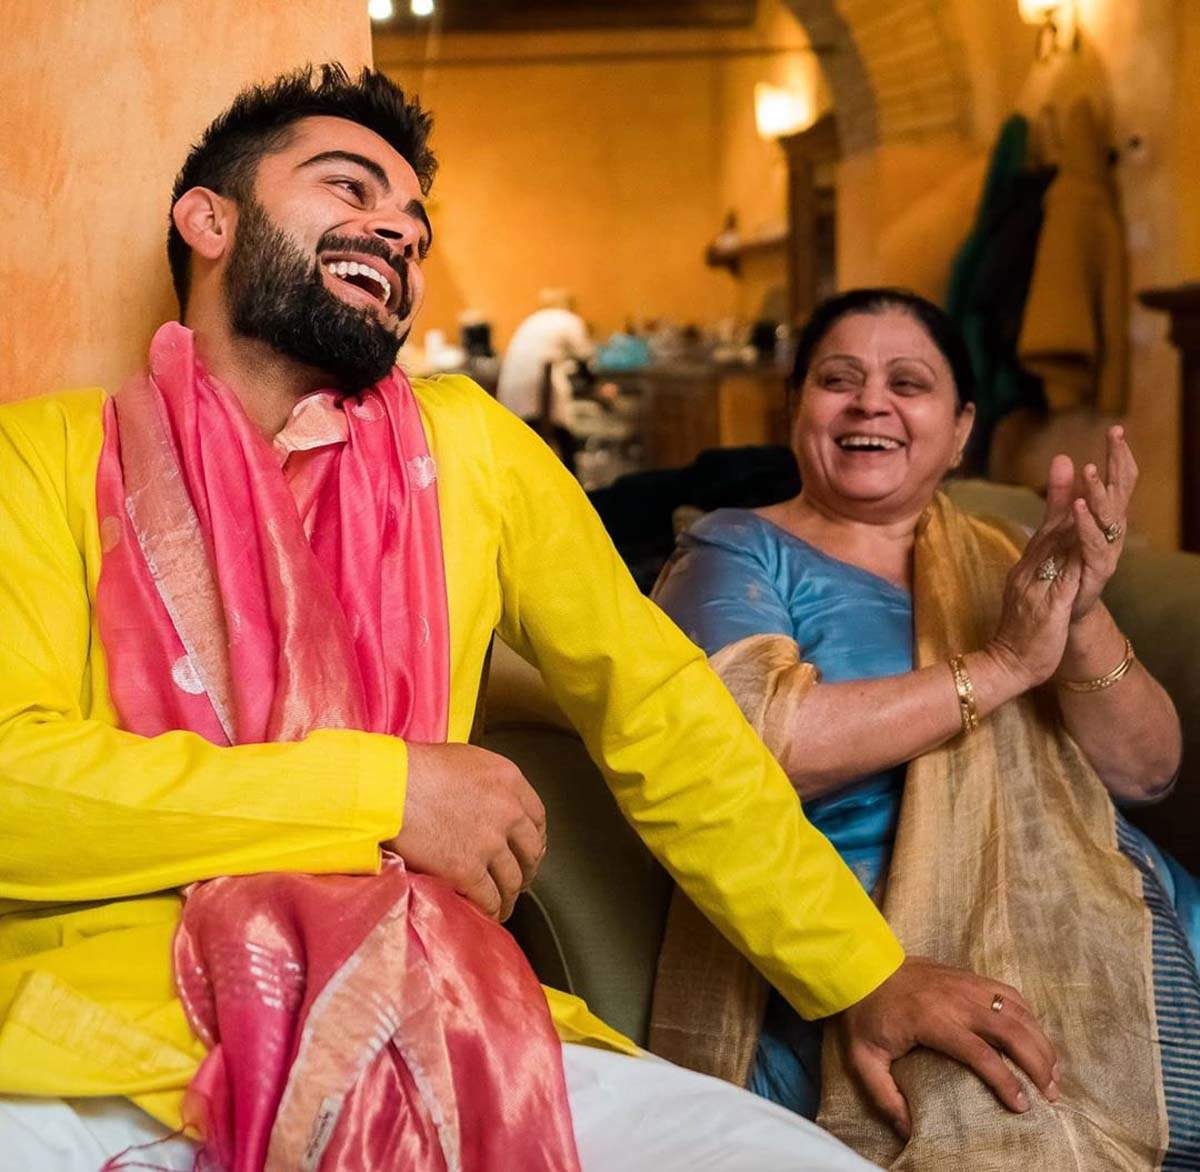 30 Best photos shared by Virat Kohli, the most followed Indian on Instagram